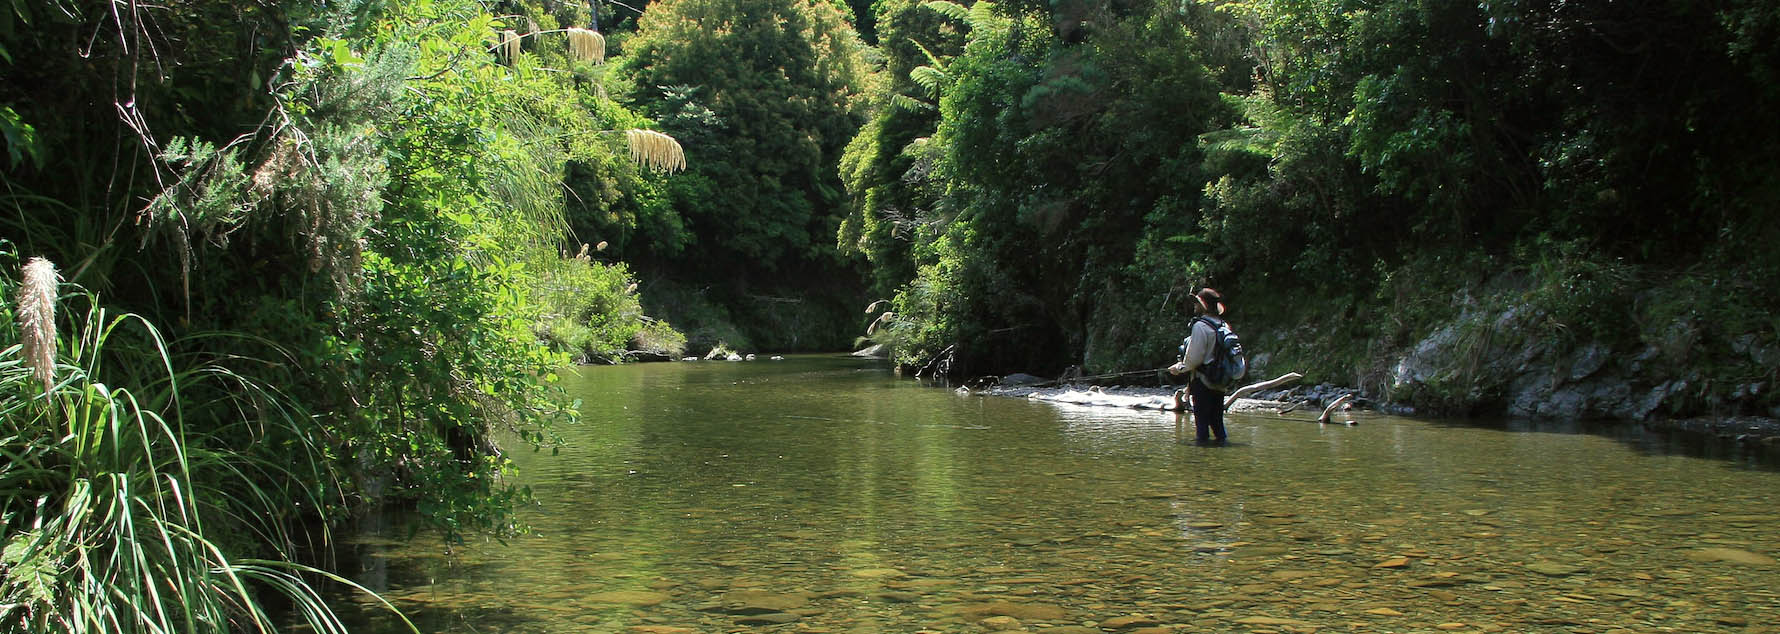 Fly fisherman fishing and walking ankle deep through a shallow and wide gin-clear backcountry pool, with bush clad surrounds, New Zealand